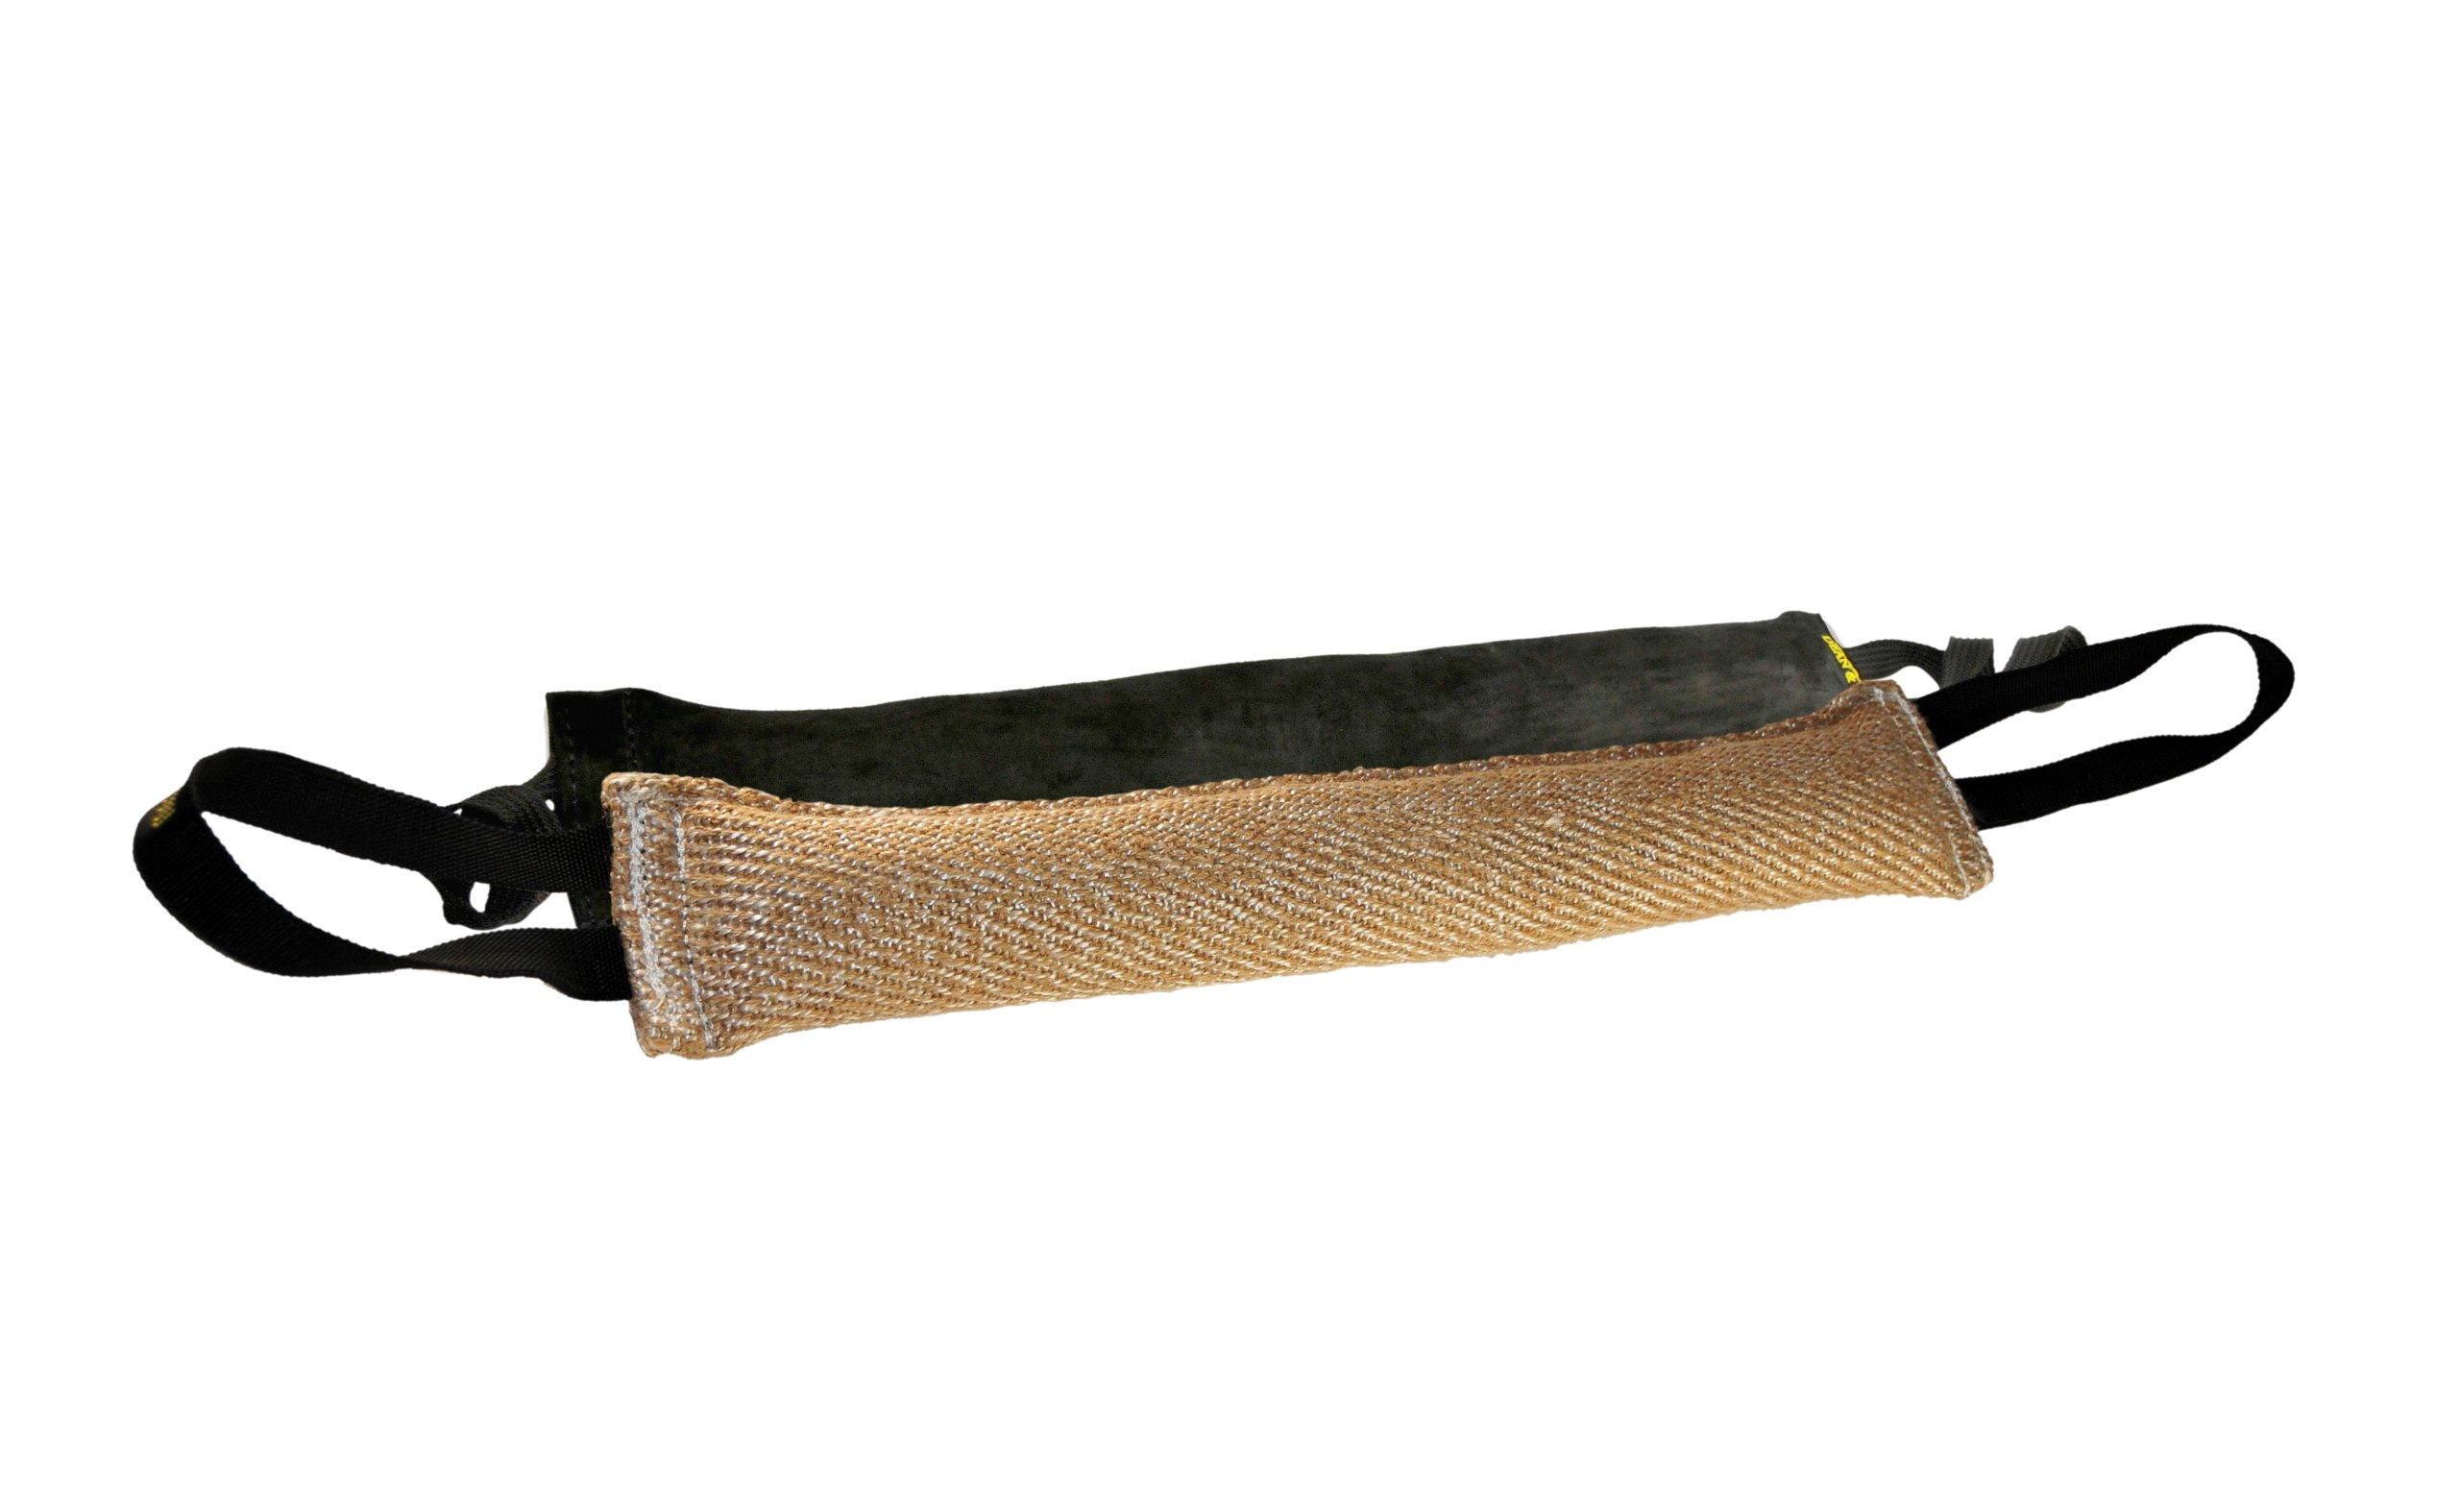 Dean & Tyler Bundle of 2 Tugs for Pets, Jute and Leather, 24-Inch by 4-Inch by Dean & Tyler